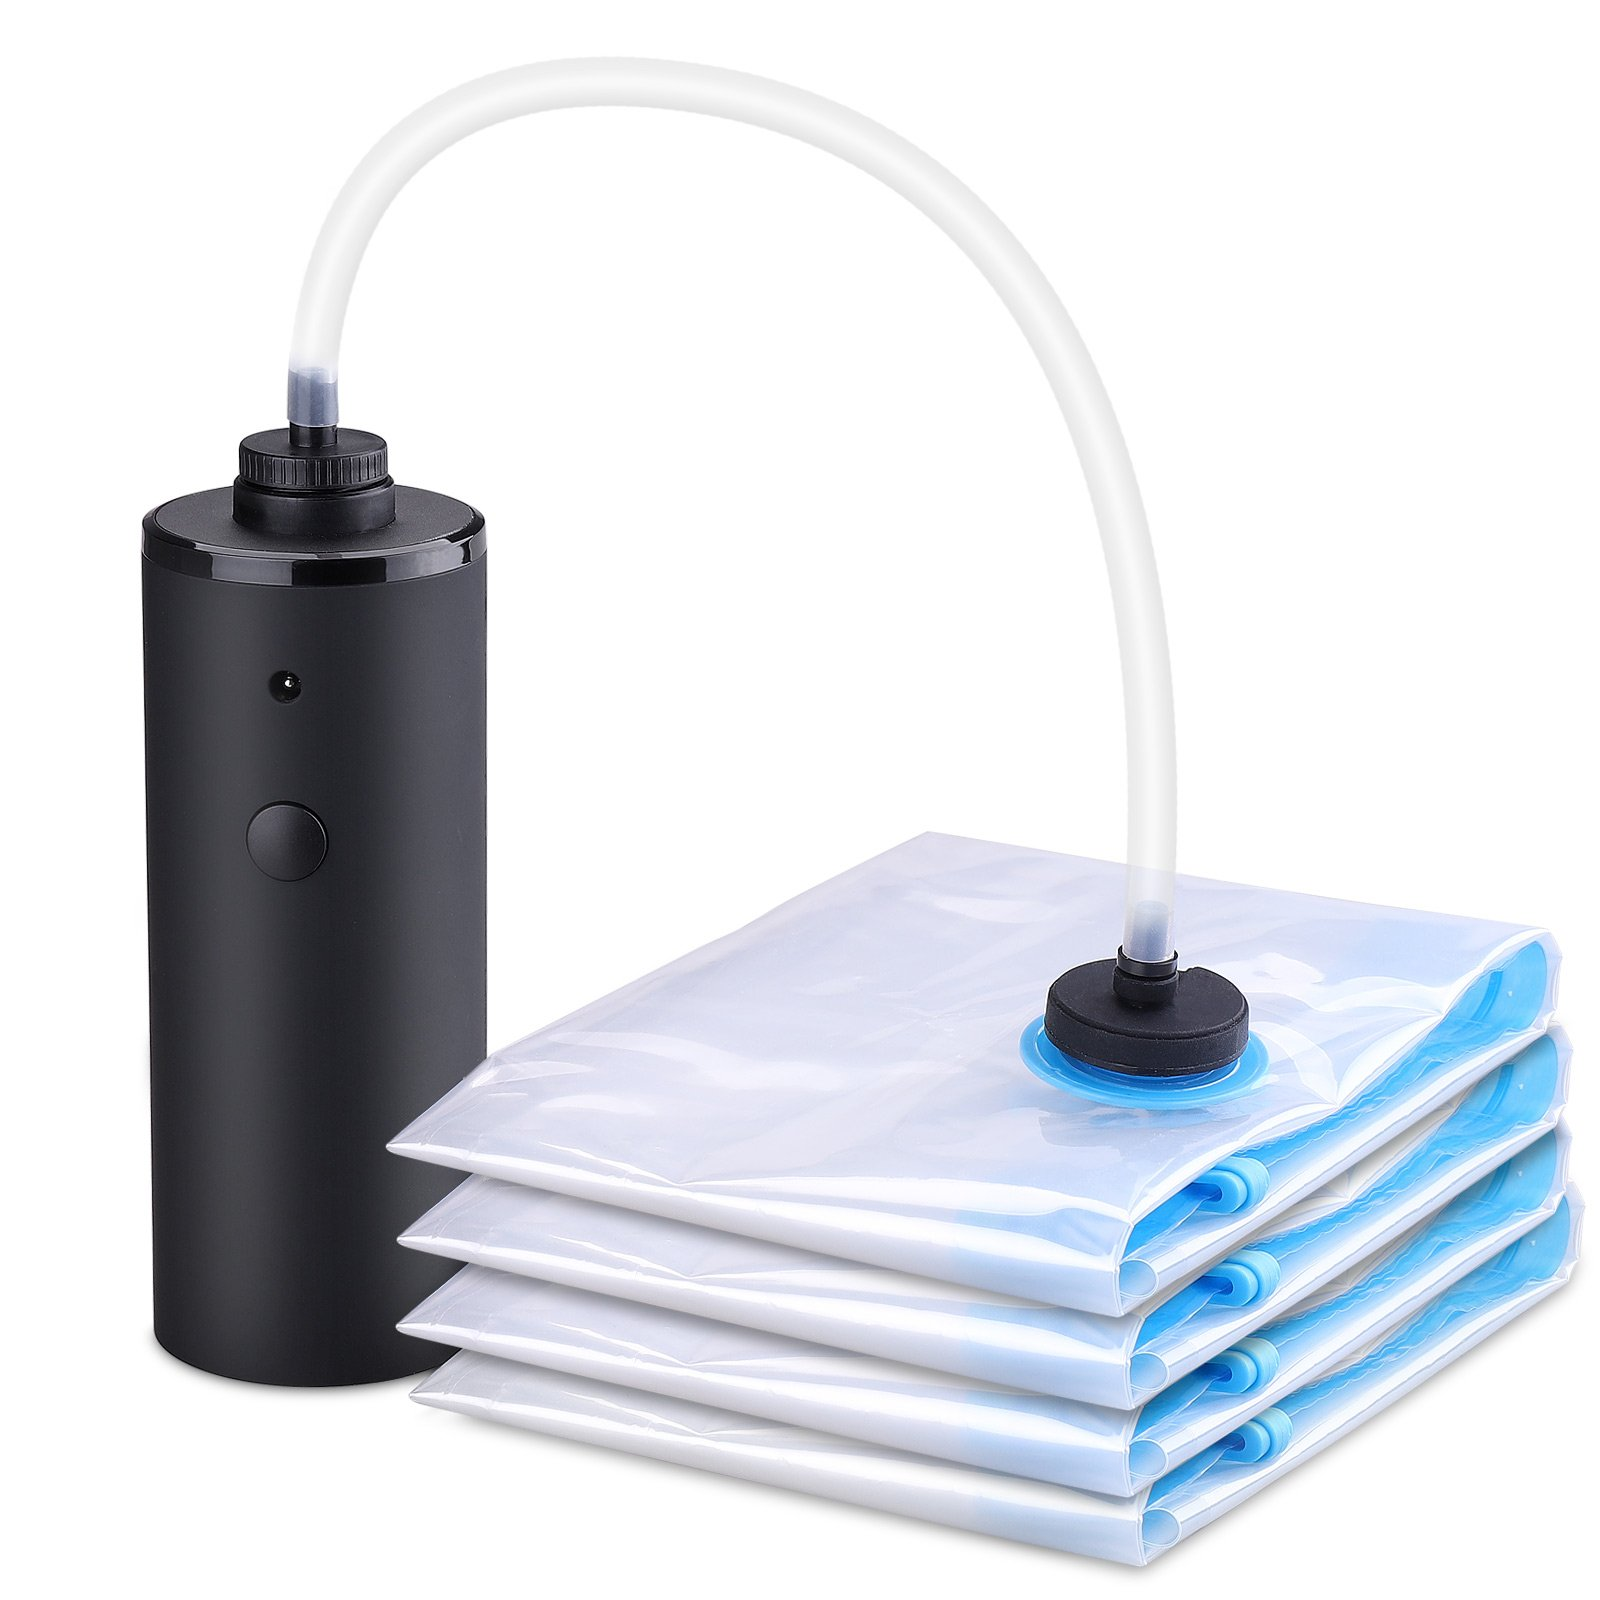 HAWATOUR Travel Vacuum Storage Bags with Electric Pump - 2 Large & 2 Medium Space Saver Bags for Travel and Home Use